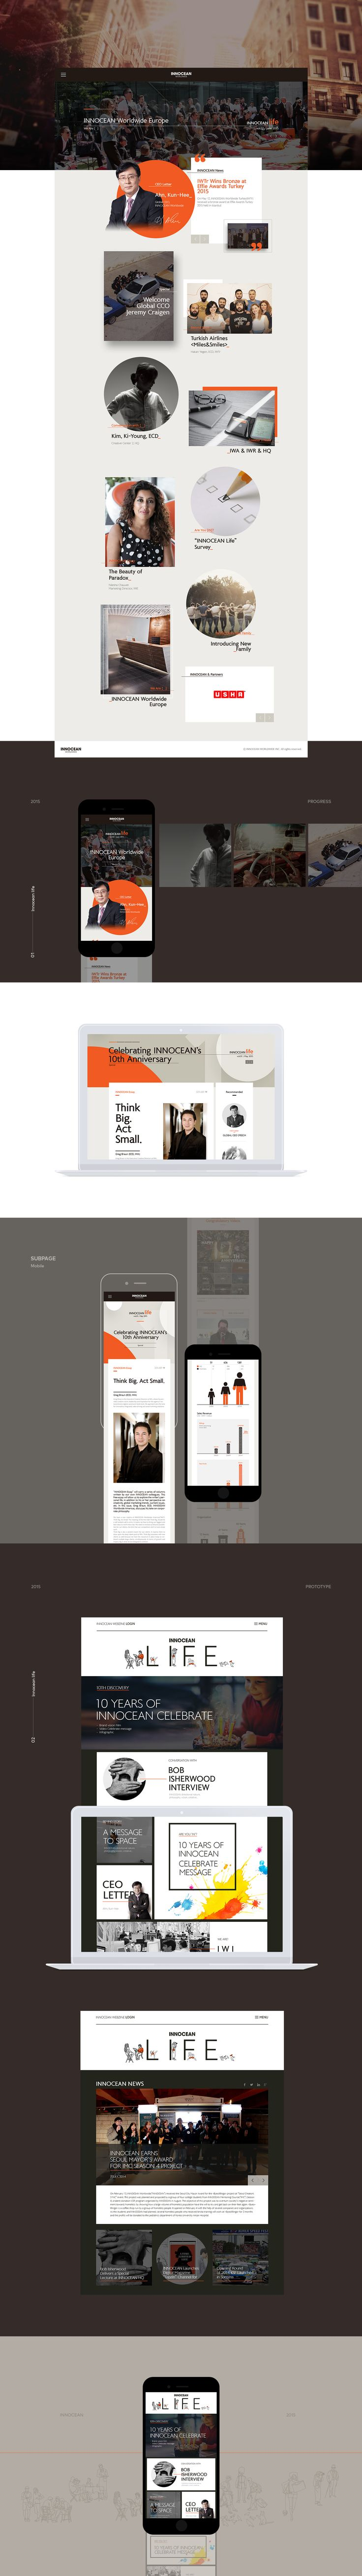 다음 @Behance 프로젝트 확인: \u201cINNOCEAN\u201d https://www.behance.net/gallery/45453667/INNOCEAN